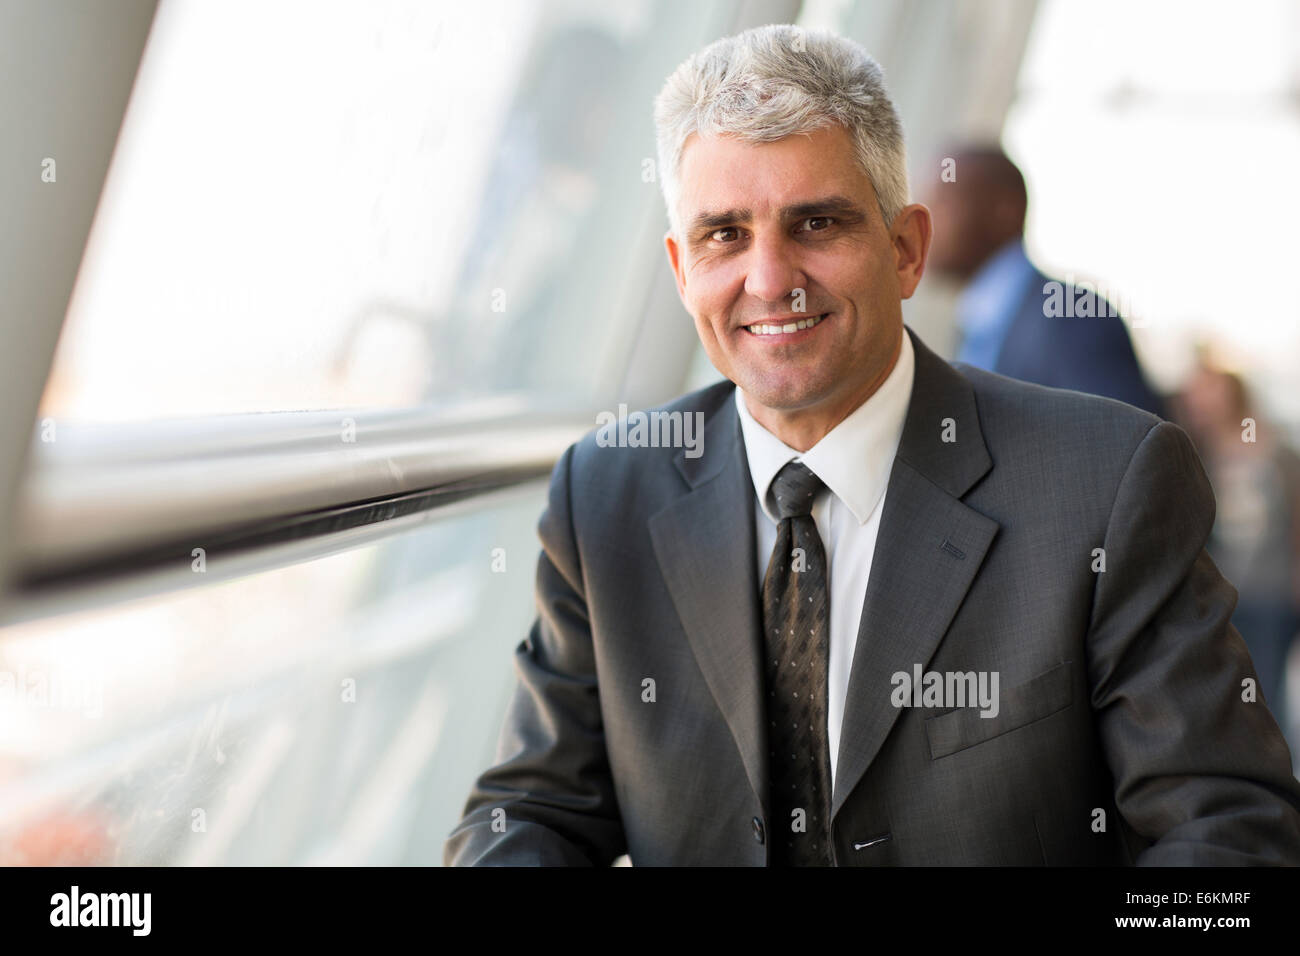 Handsome middle aged businessman in modern office Photo Stock